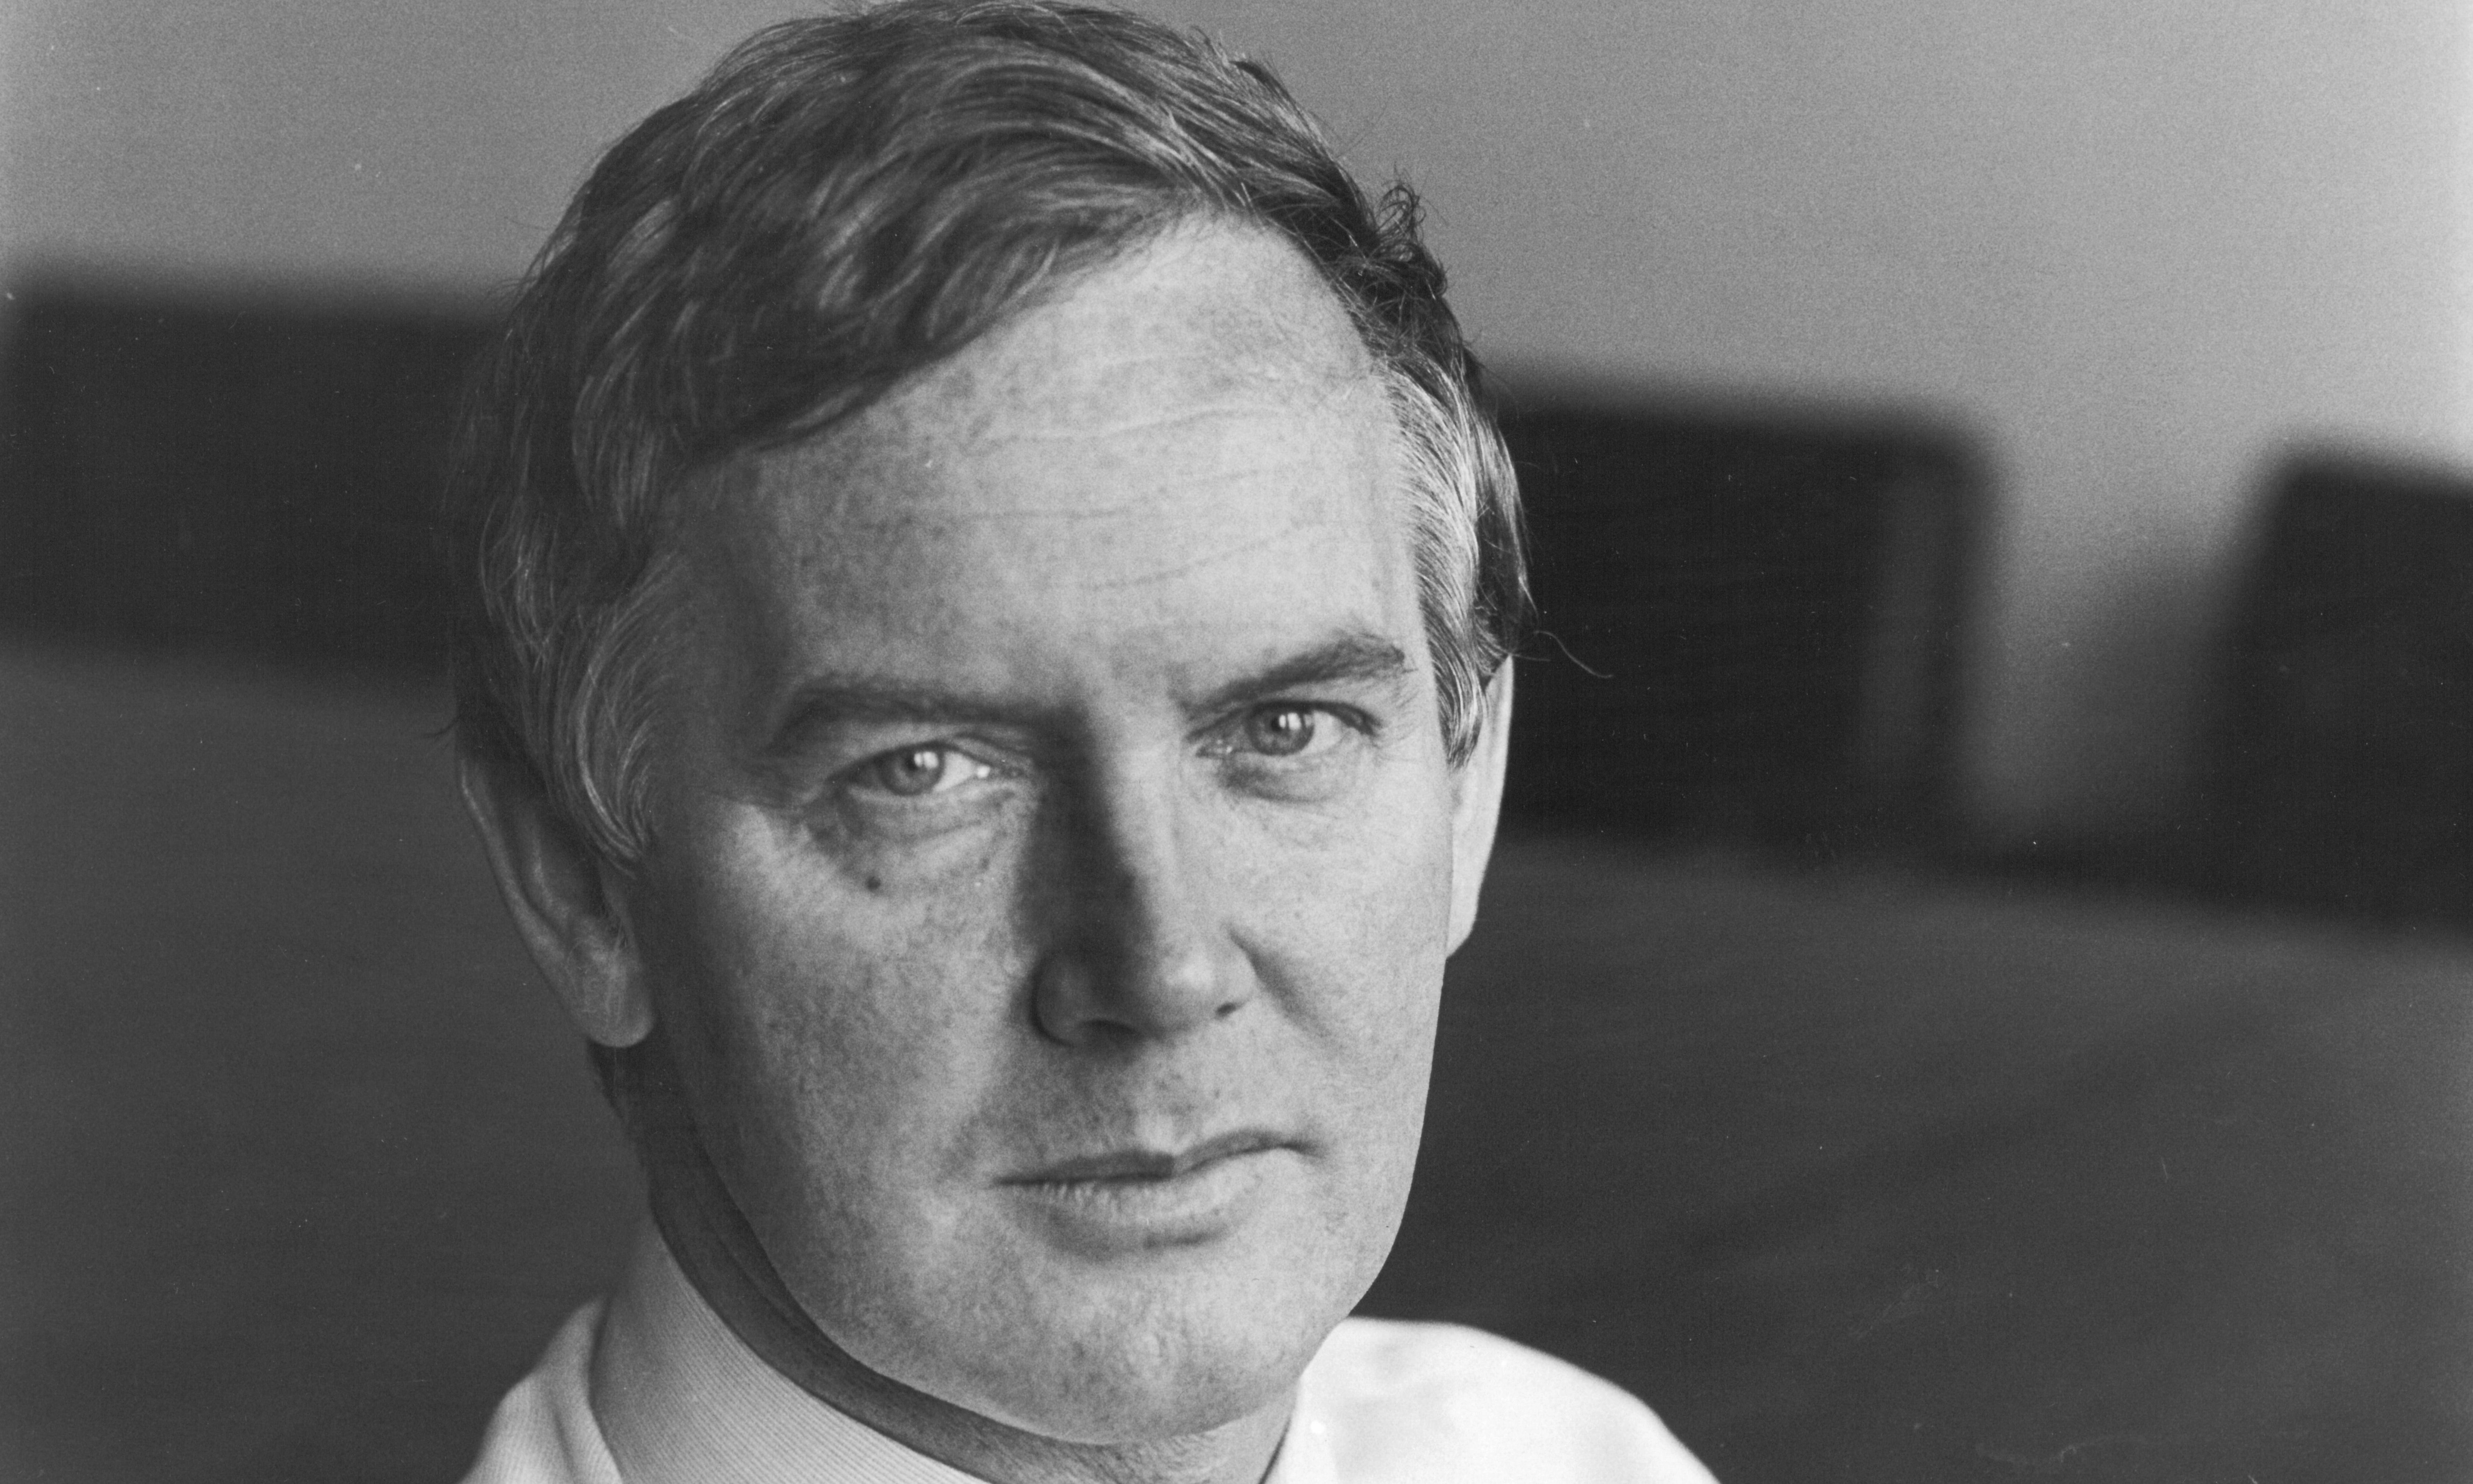 Lord Moore of Lower Marsh obituary